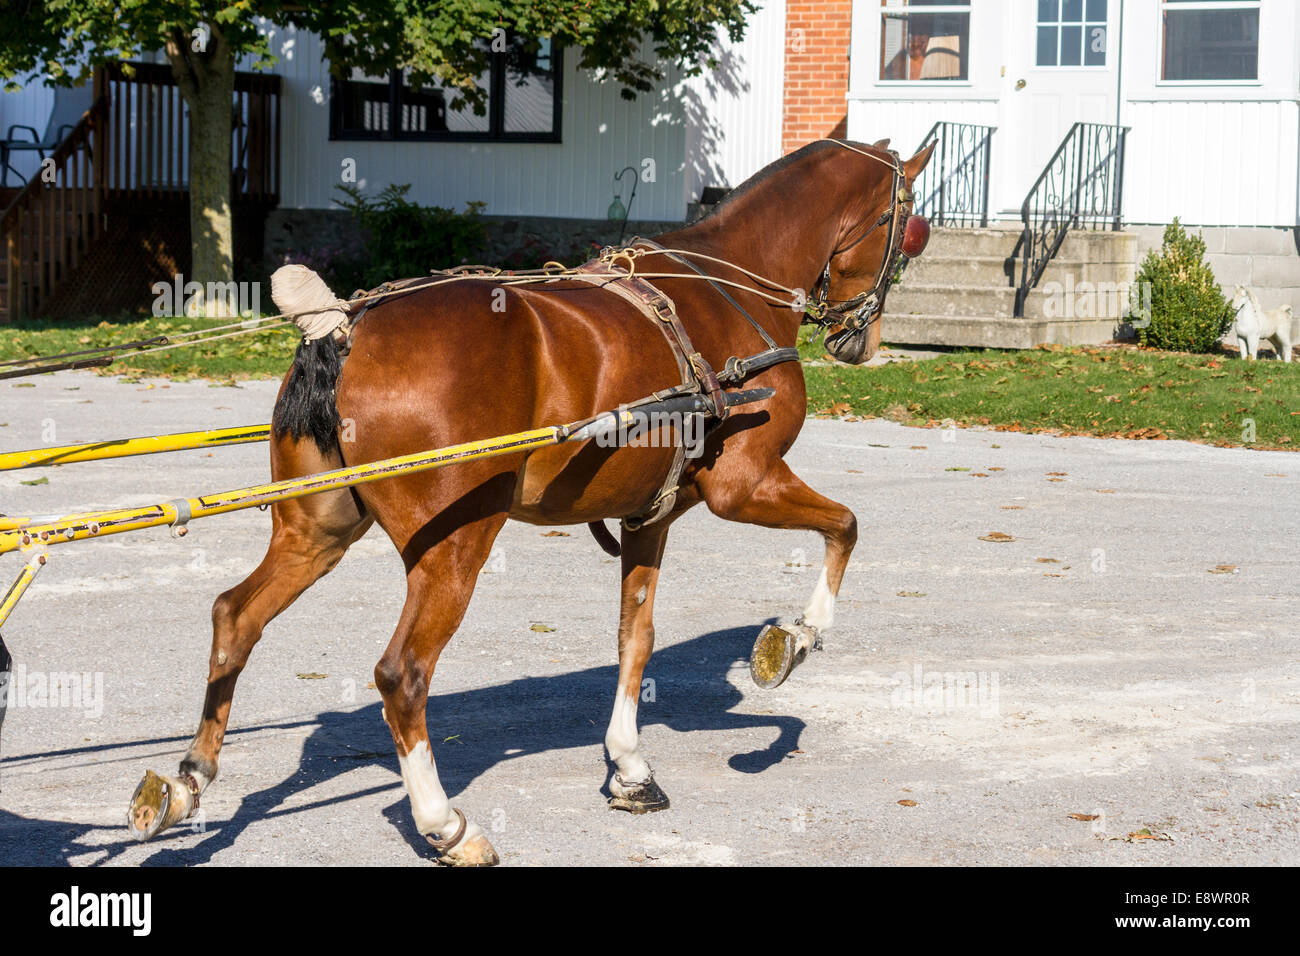 hight resolution of rear view of hackney pony in harness heading out to work